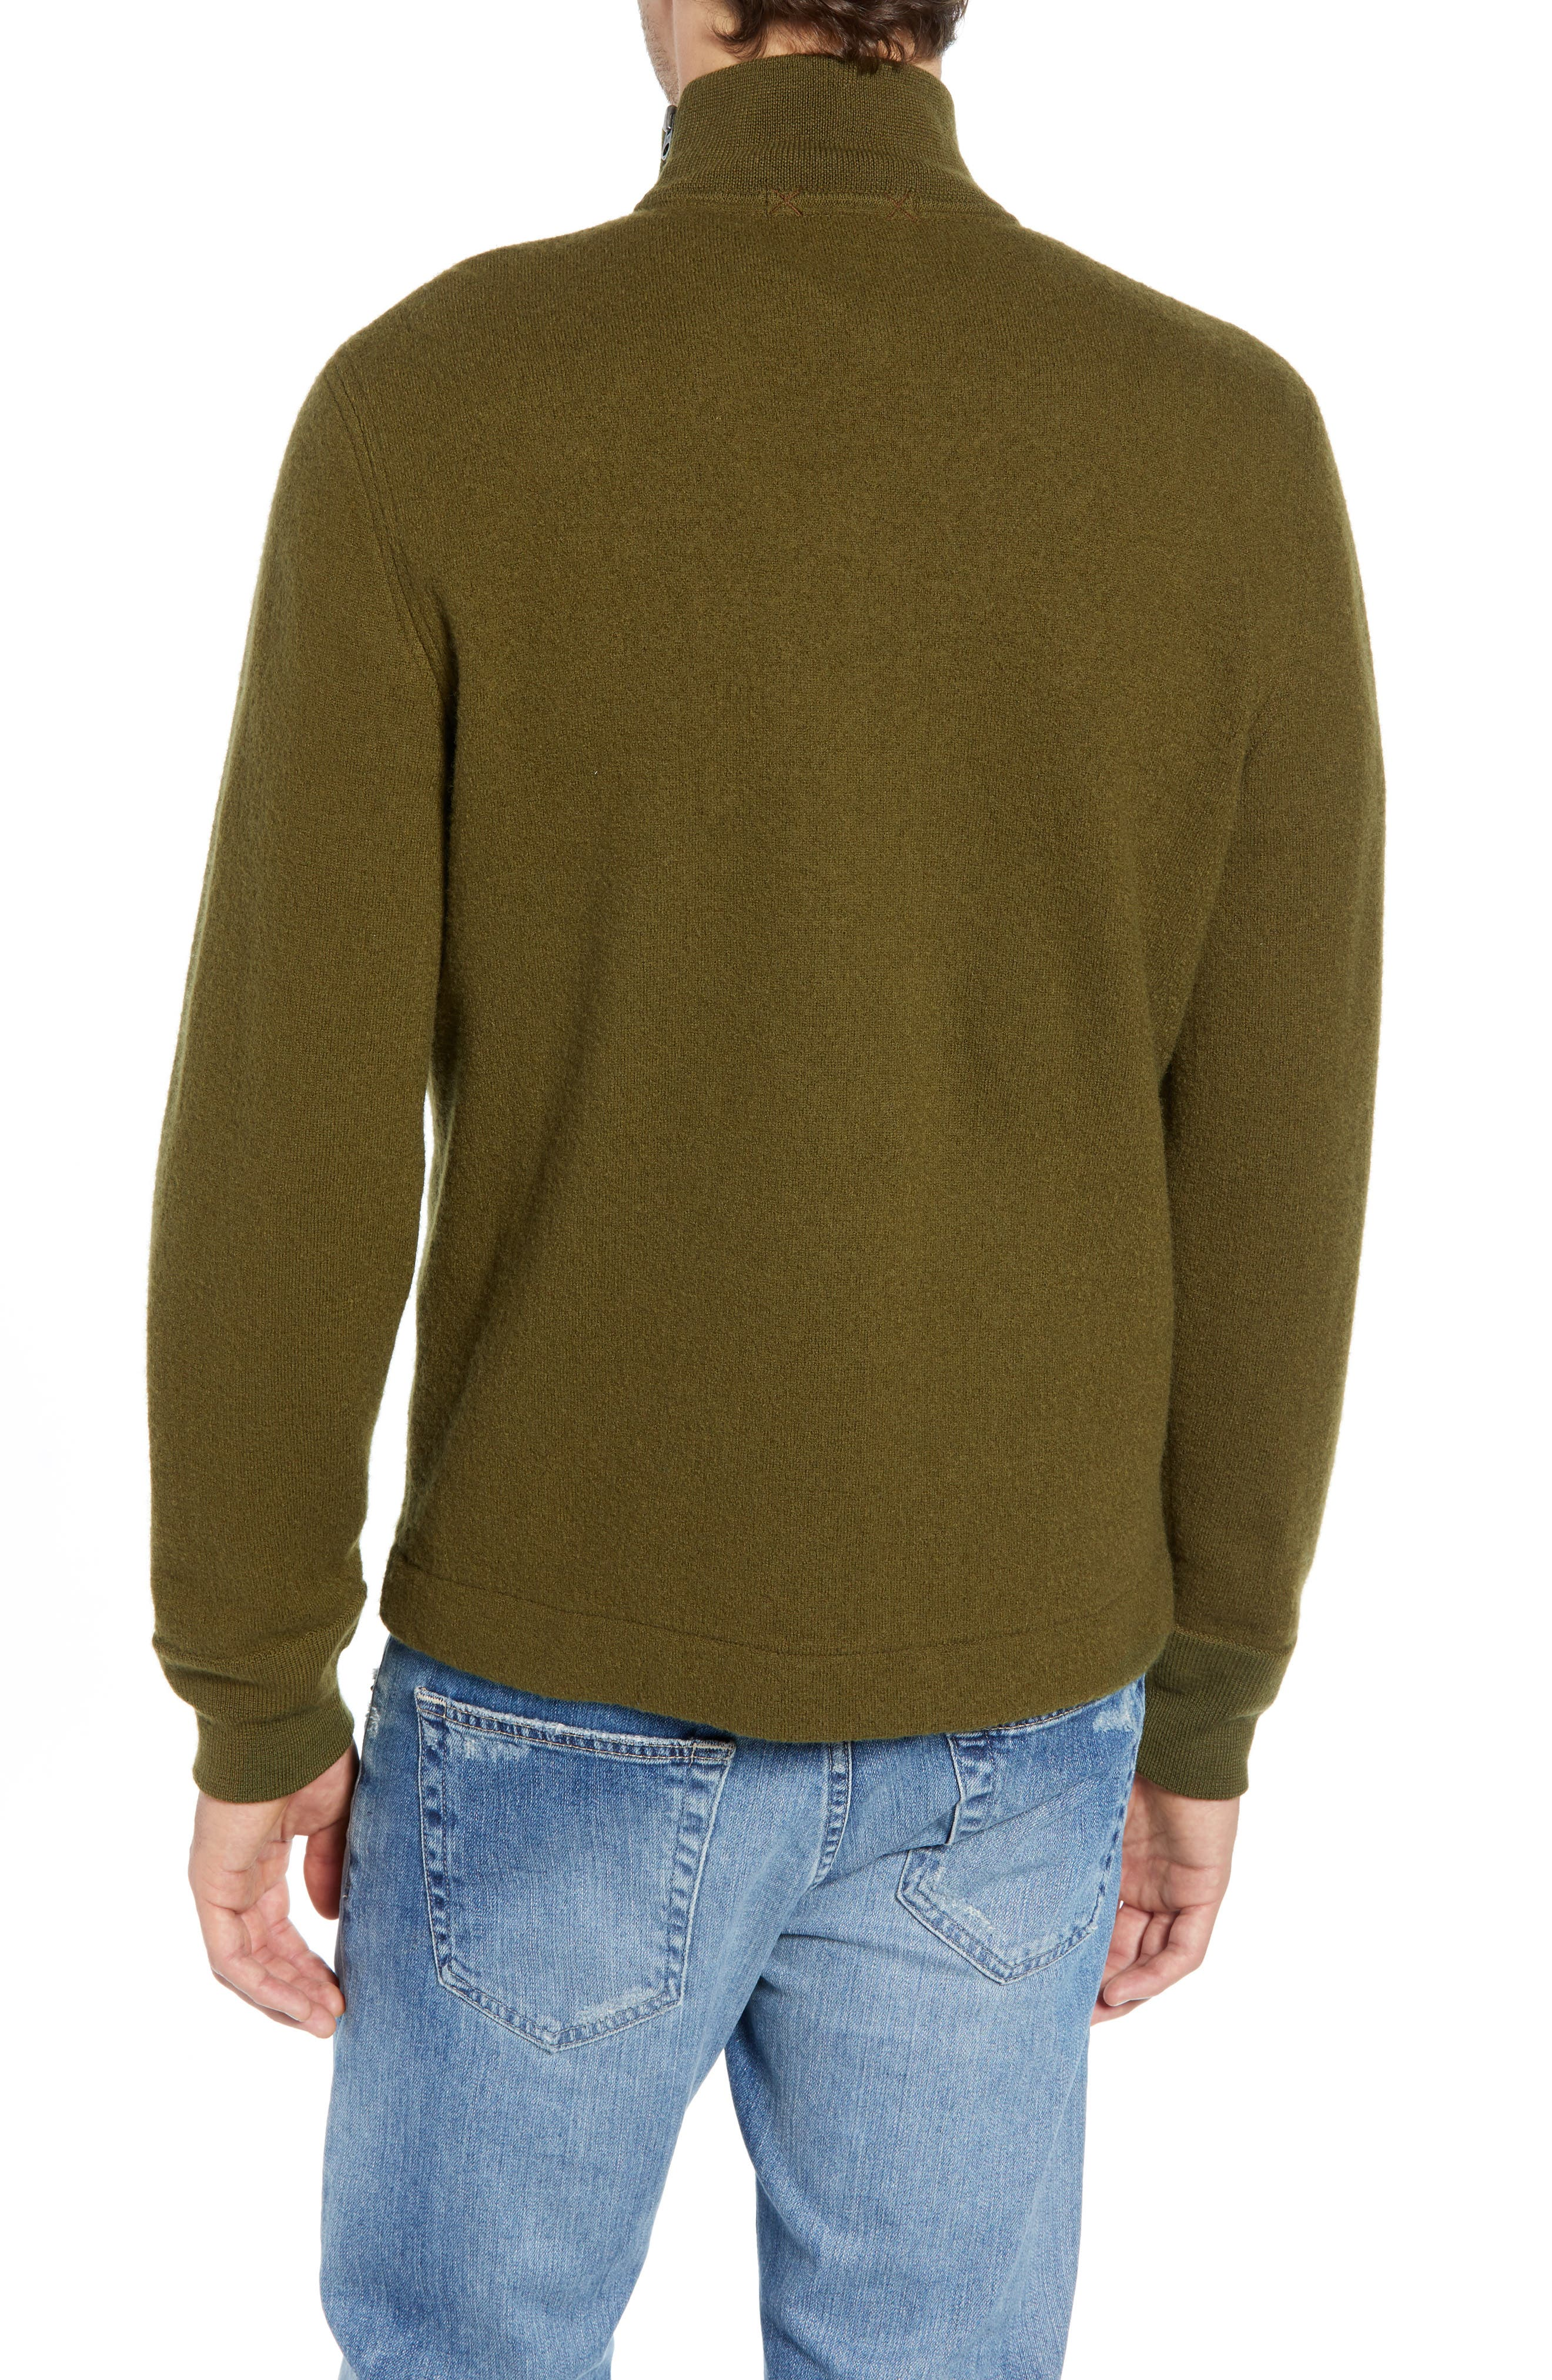 Wallace & Barnes Felted Merino Wool Mock Neck Pullover,                             Alternate thumbnail 2, color,                             ORCHARD GREEN